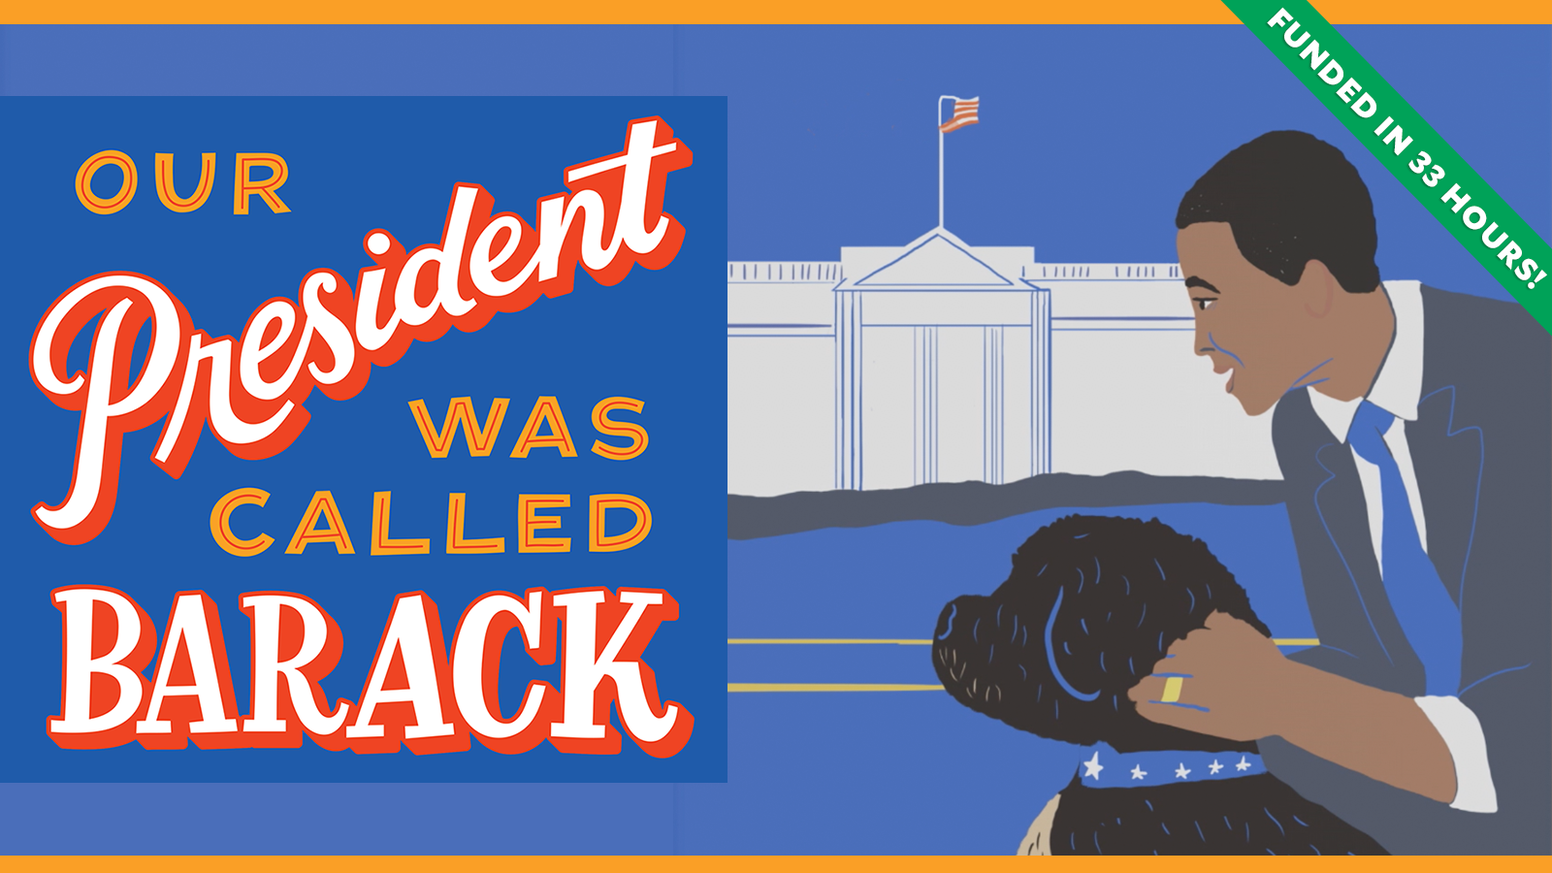 Our President Was Called Barack tells the story of Barack Obama and how kids can follow his example to make change.